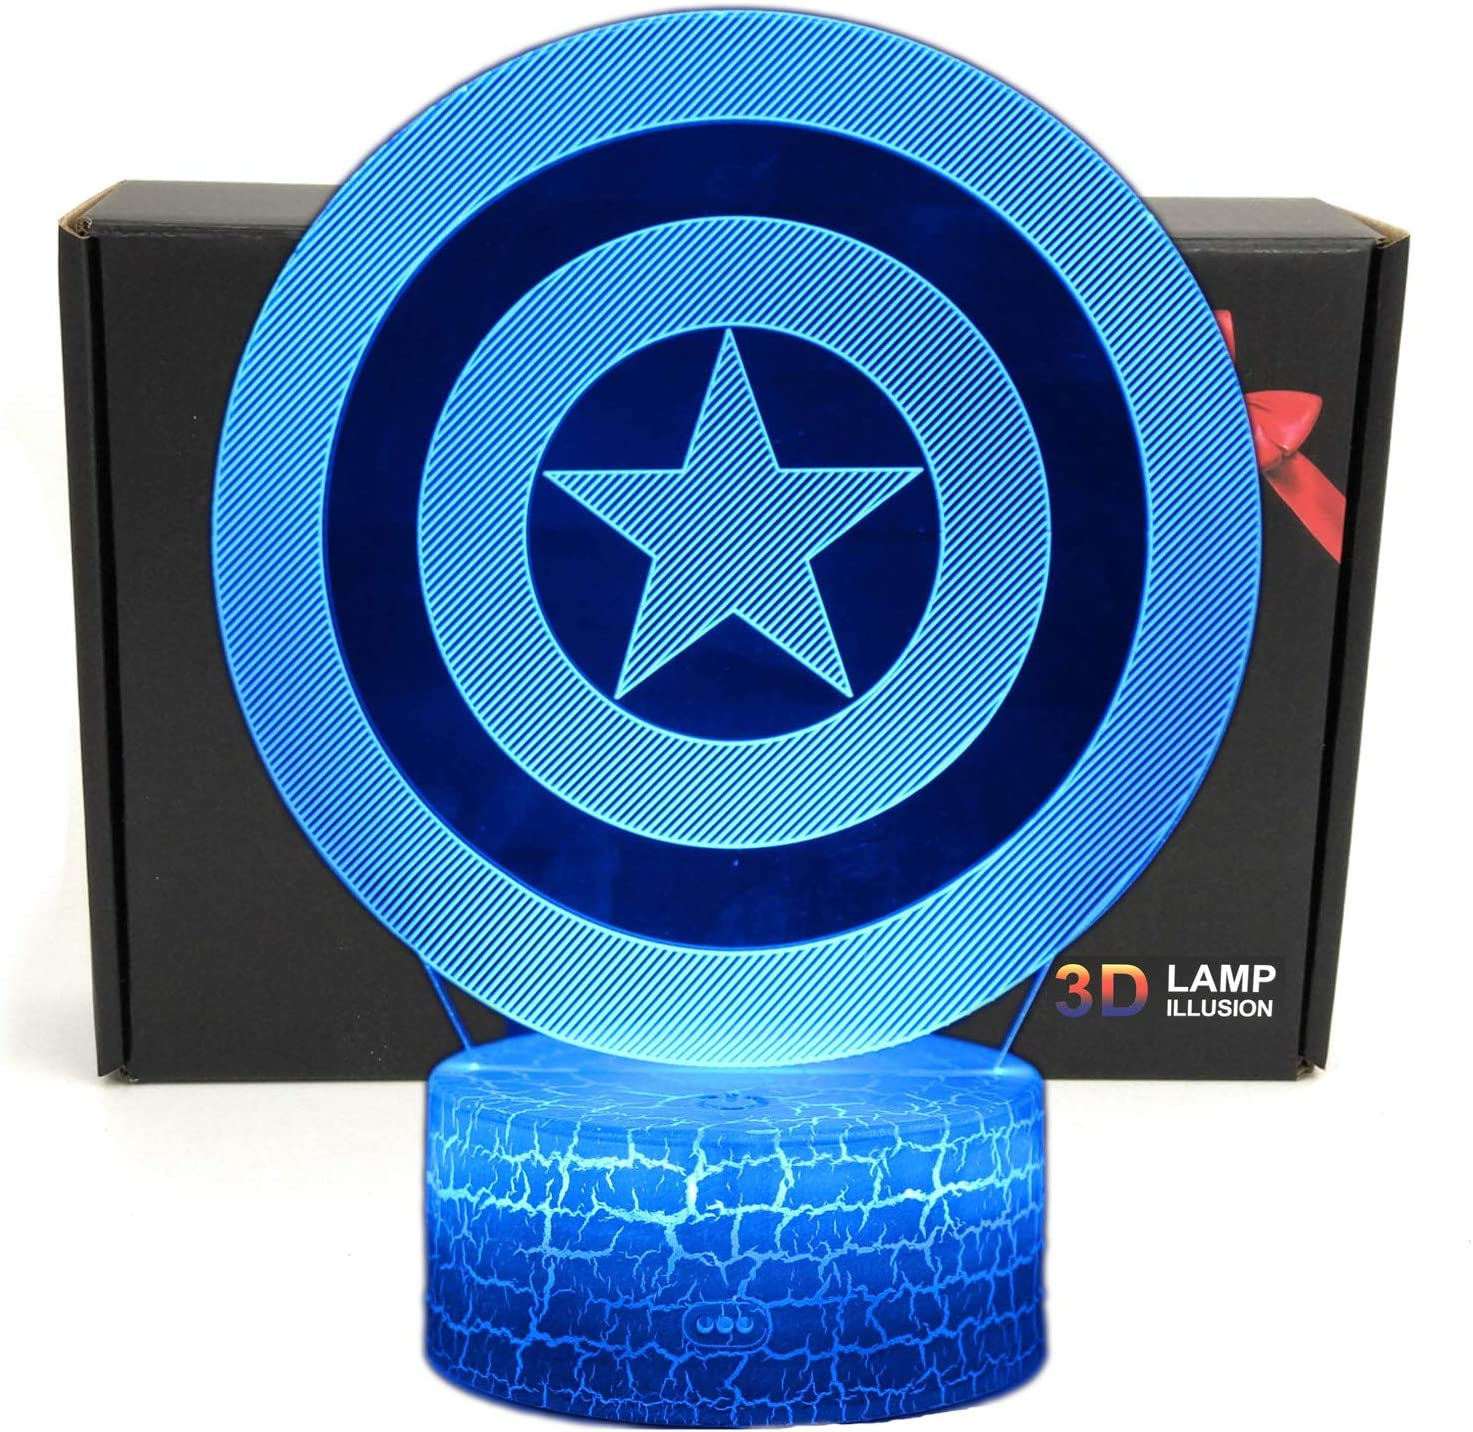 Night Light Table Lamp w/USB Power Cable (Captain America)